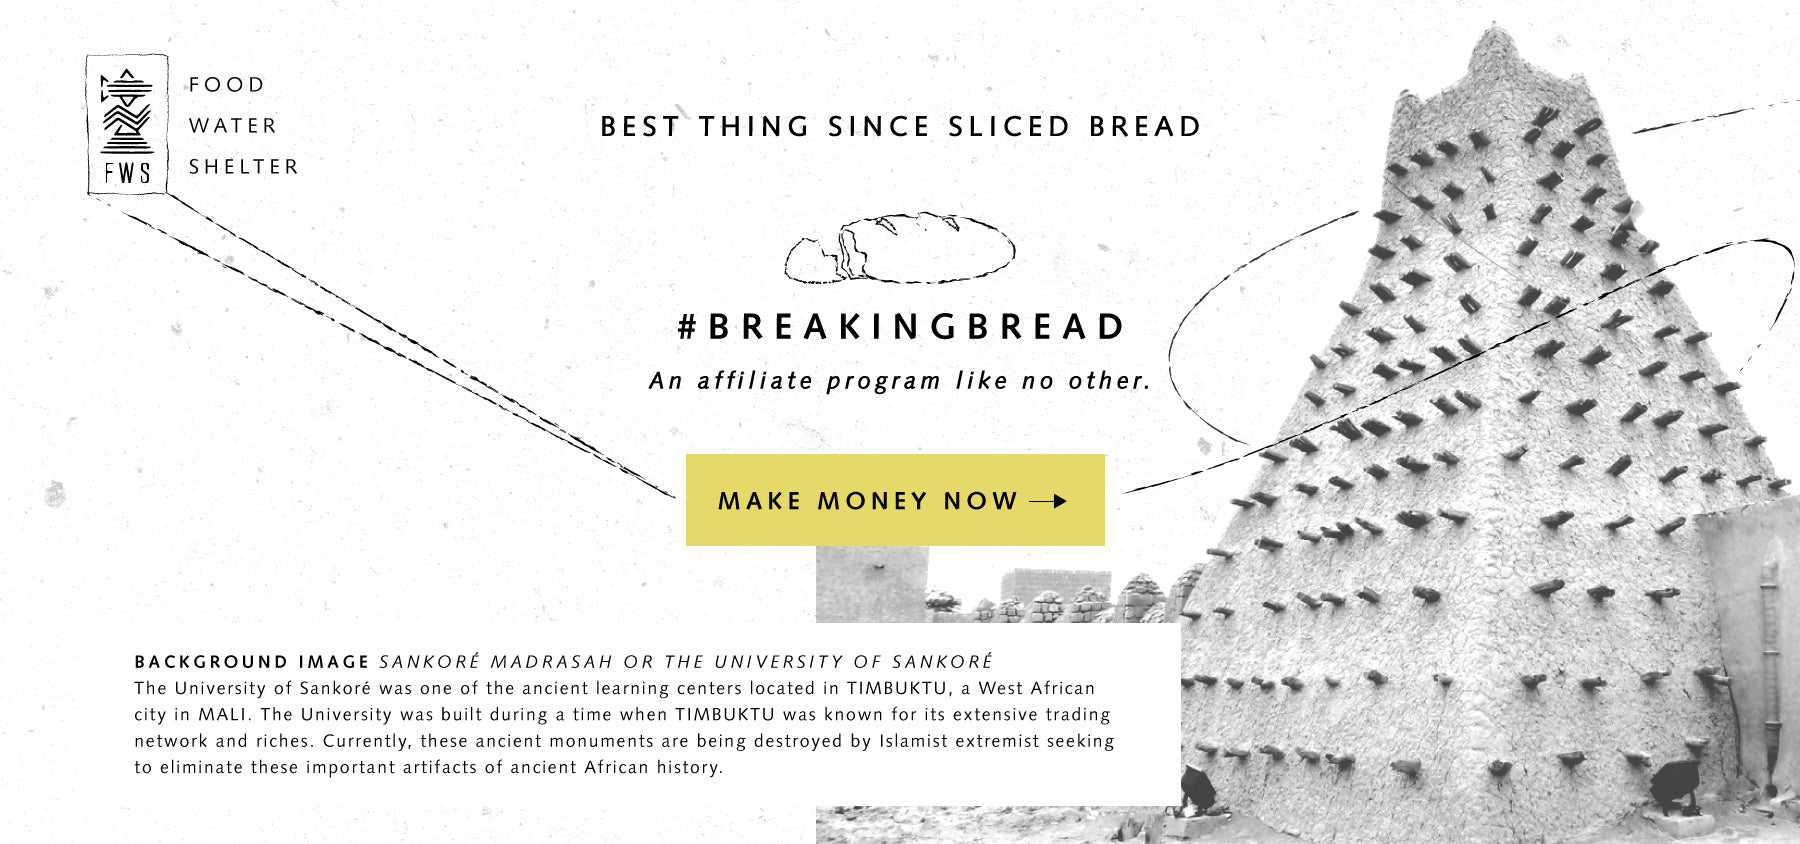 Make money with the #breakingbread program